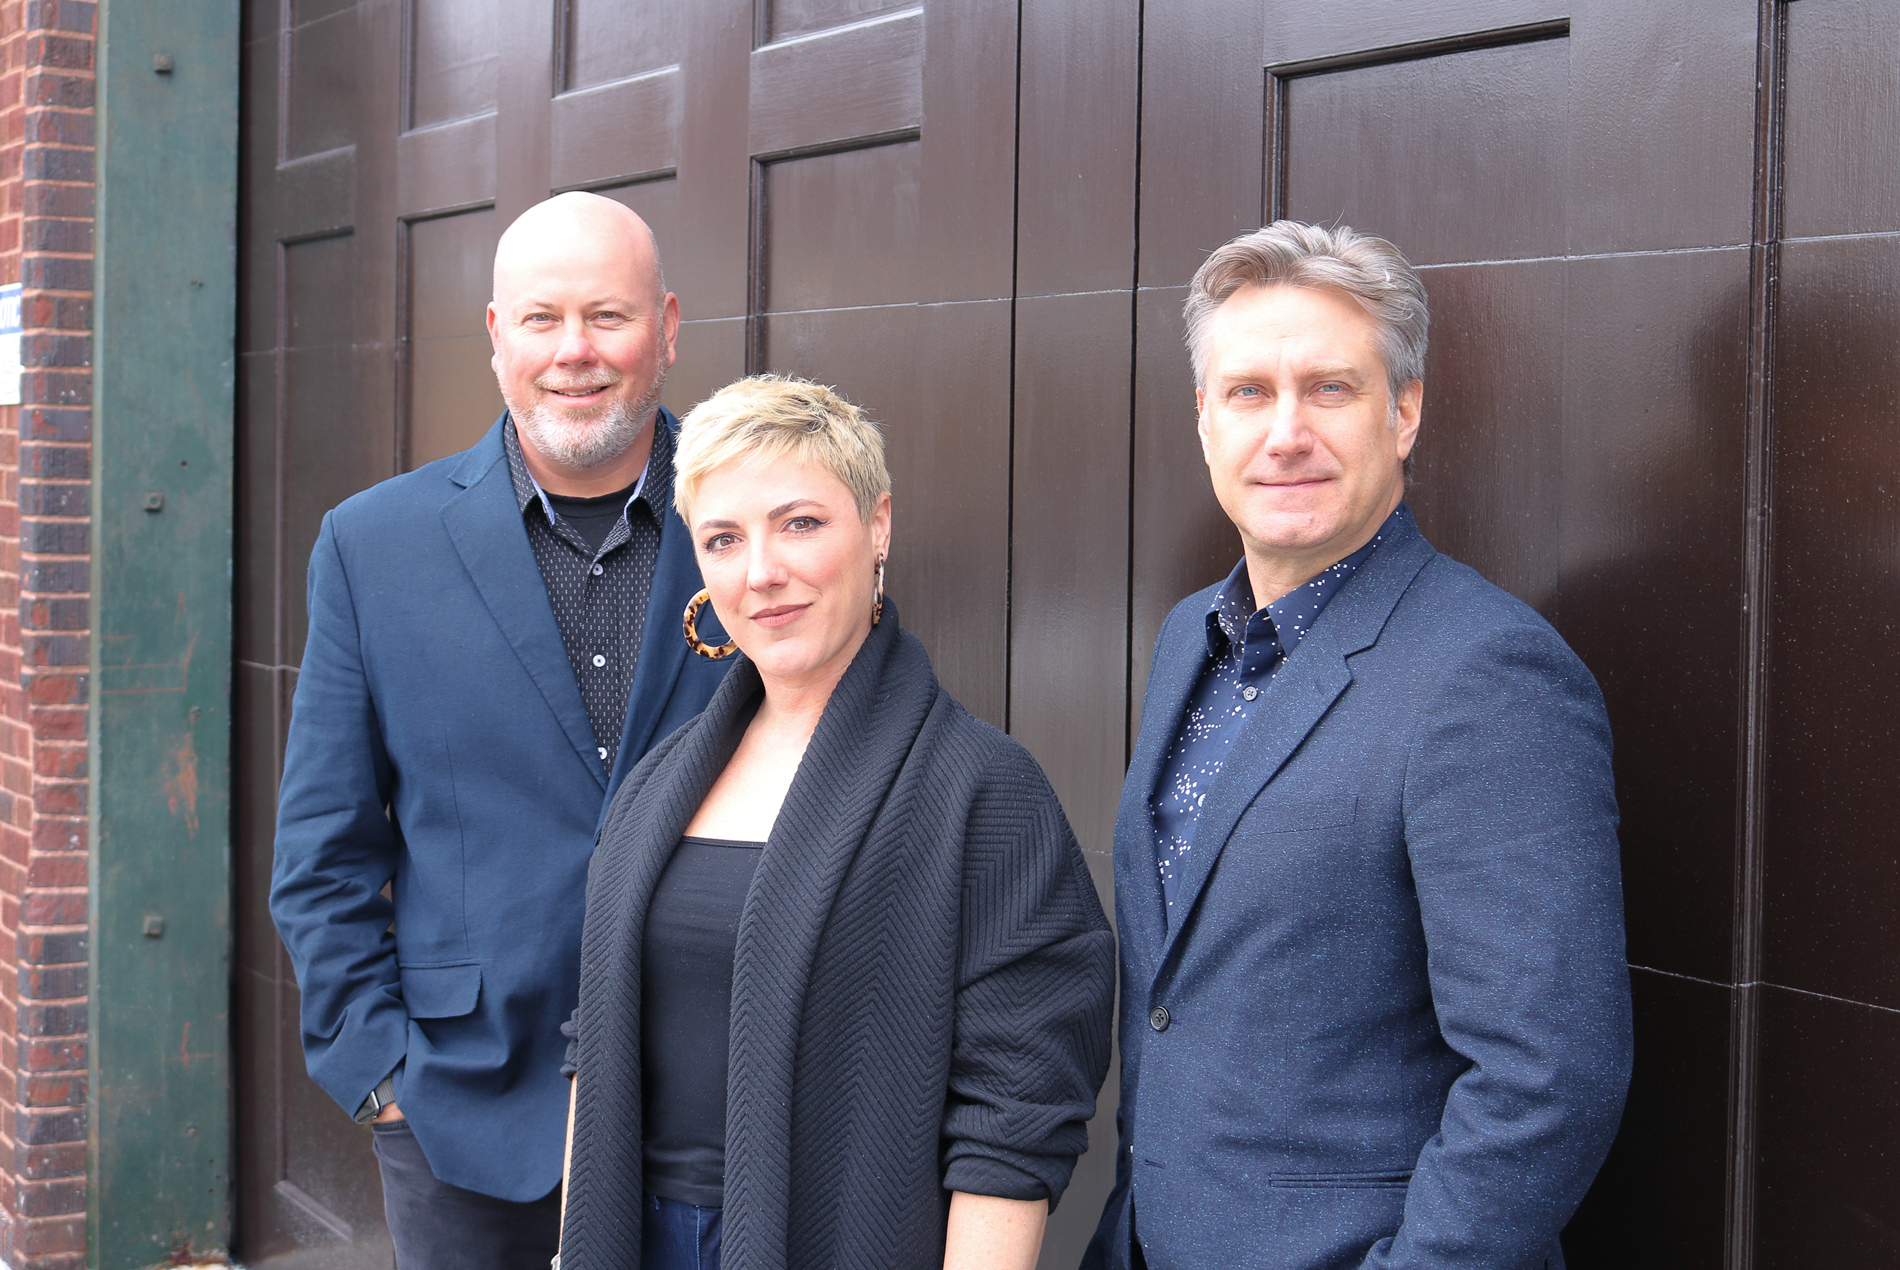 Lancaster joins Daniel Meeker, director of operations, and Caroline Hinrichs, director of business development, as part of HOK's global Experience Design leadership group.